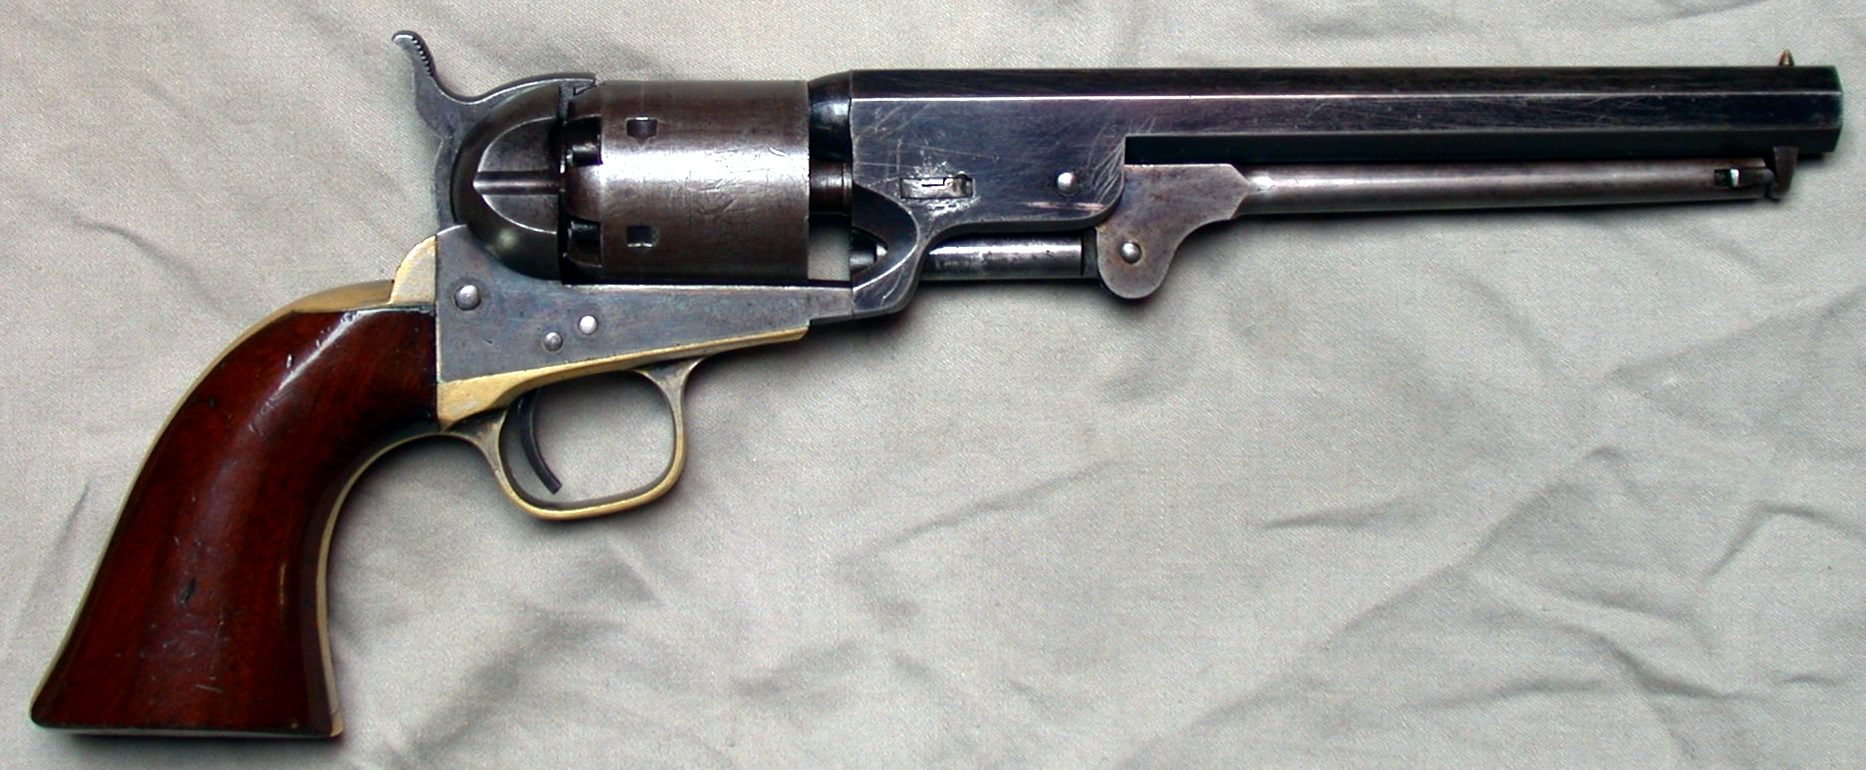 The Colt 1851 Navy, a sidearm much favored by the...oops, Confederate Army (as well as Union troops).